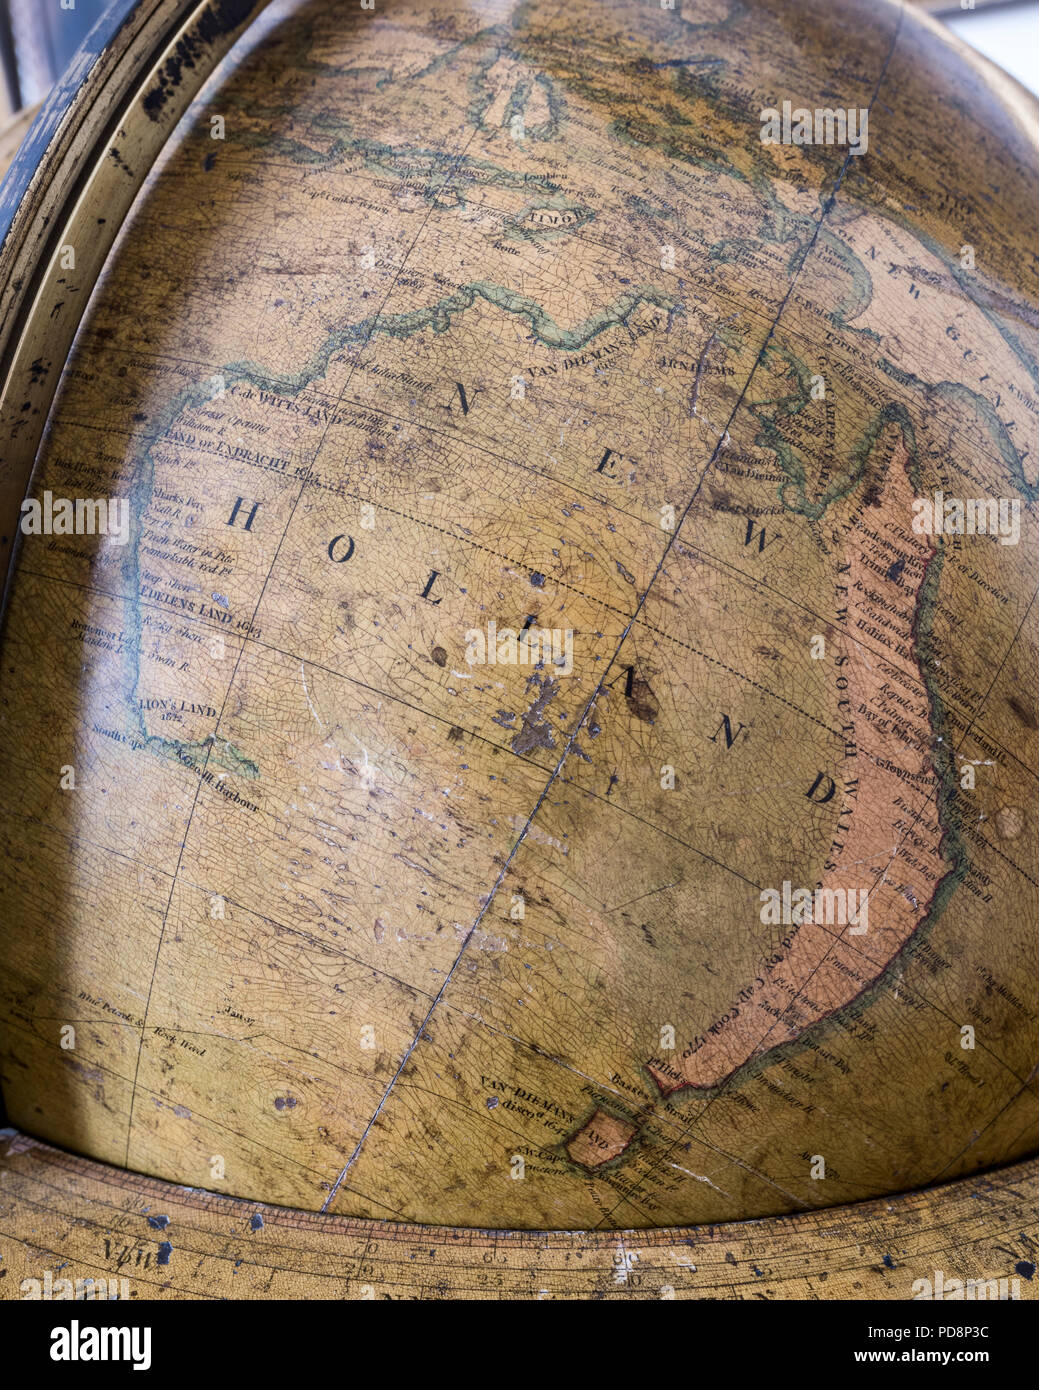 Large antique globe showing New Holland - Stock Image